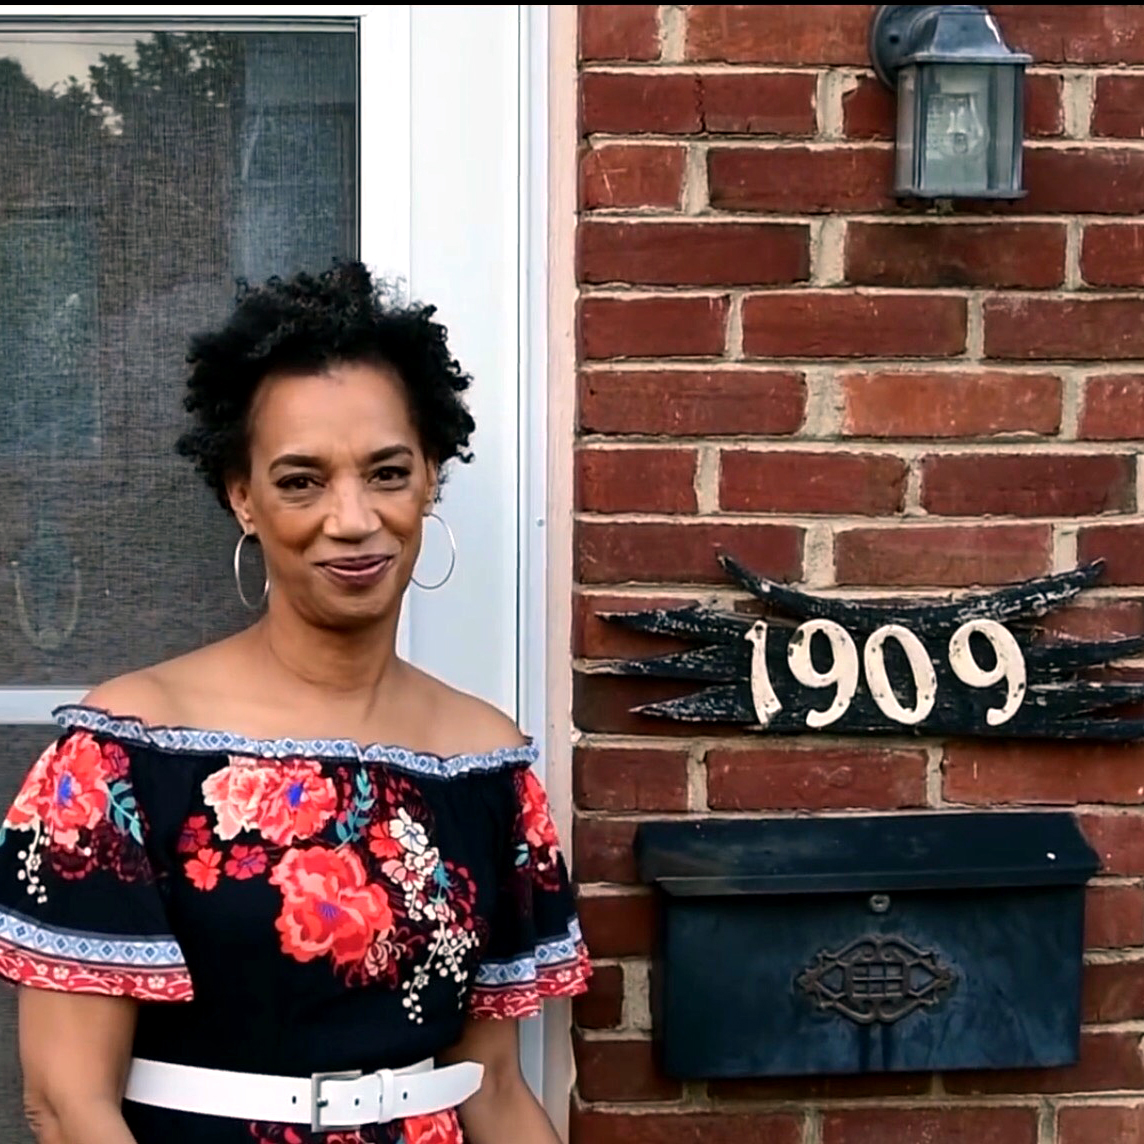 Wilma Jones grew up in Arlington's Hall's Hill neighborhood. She's lived in four different locations in the county, but her childhood home is still her favorite.